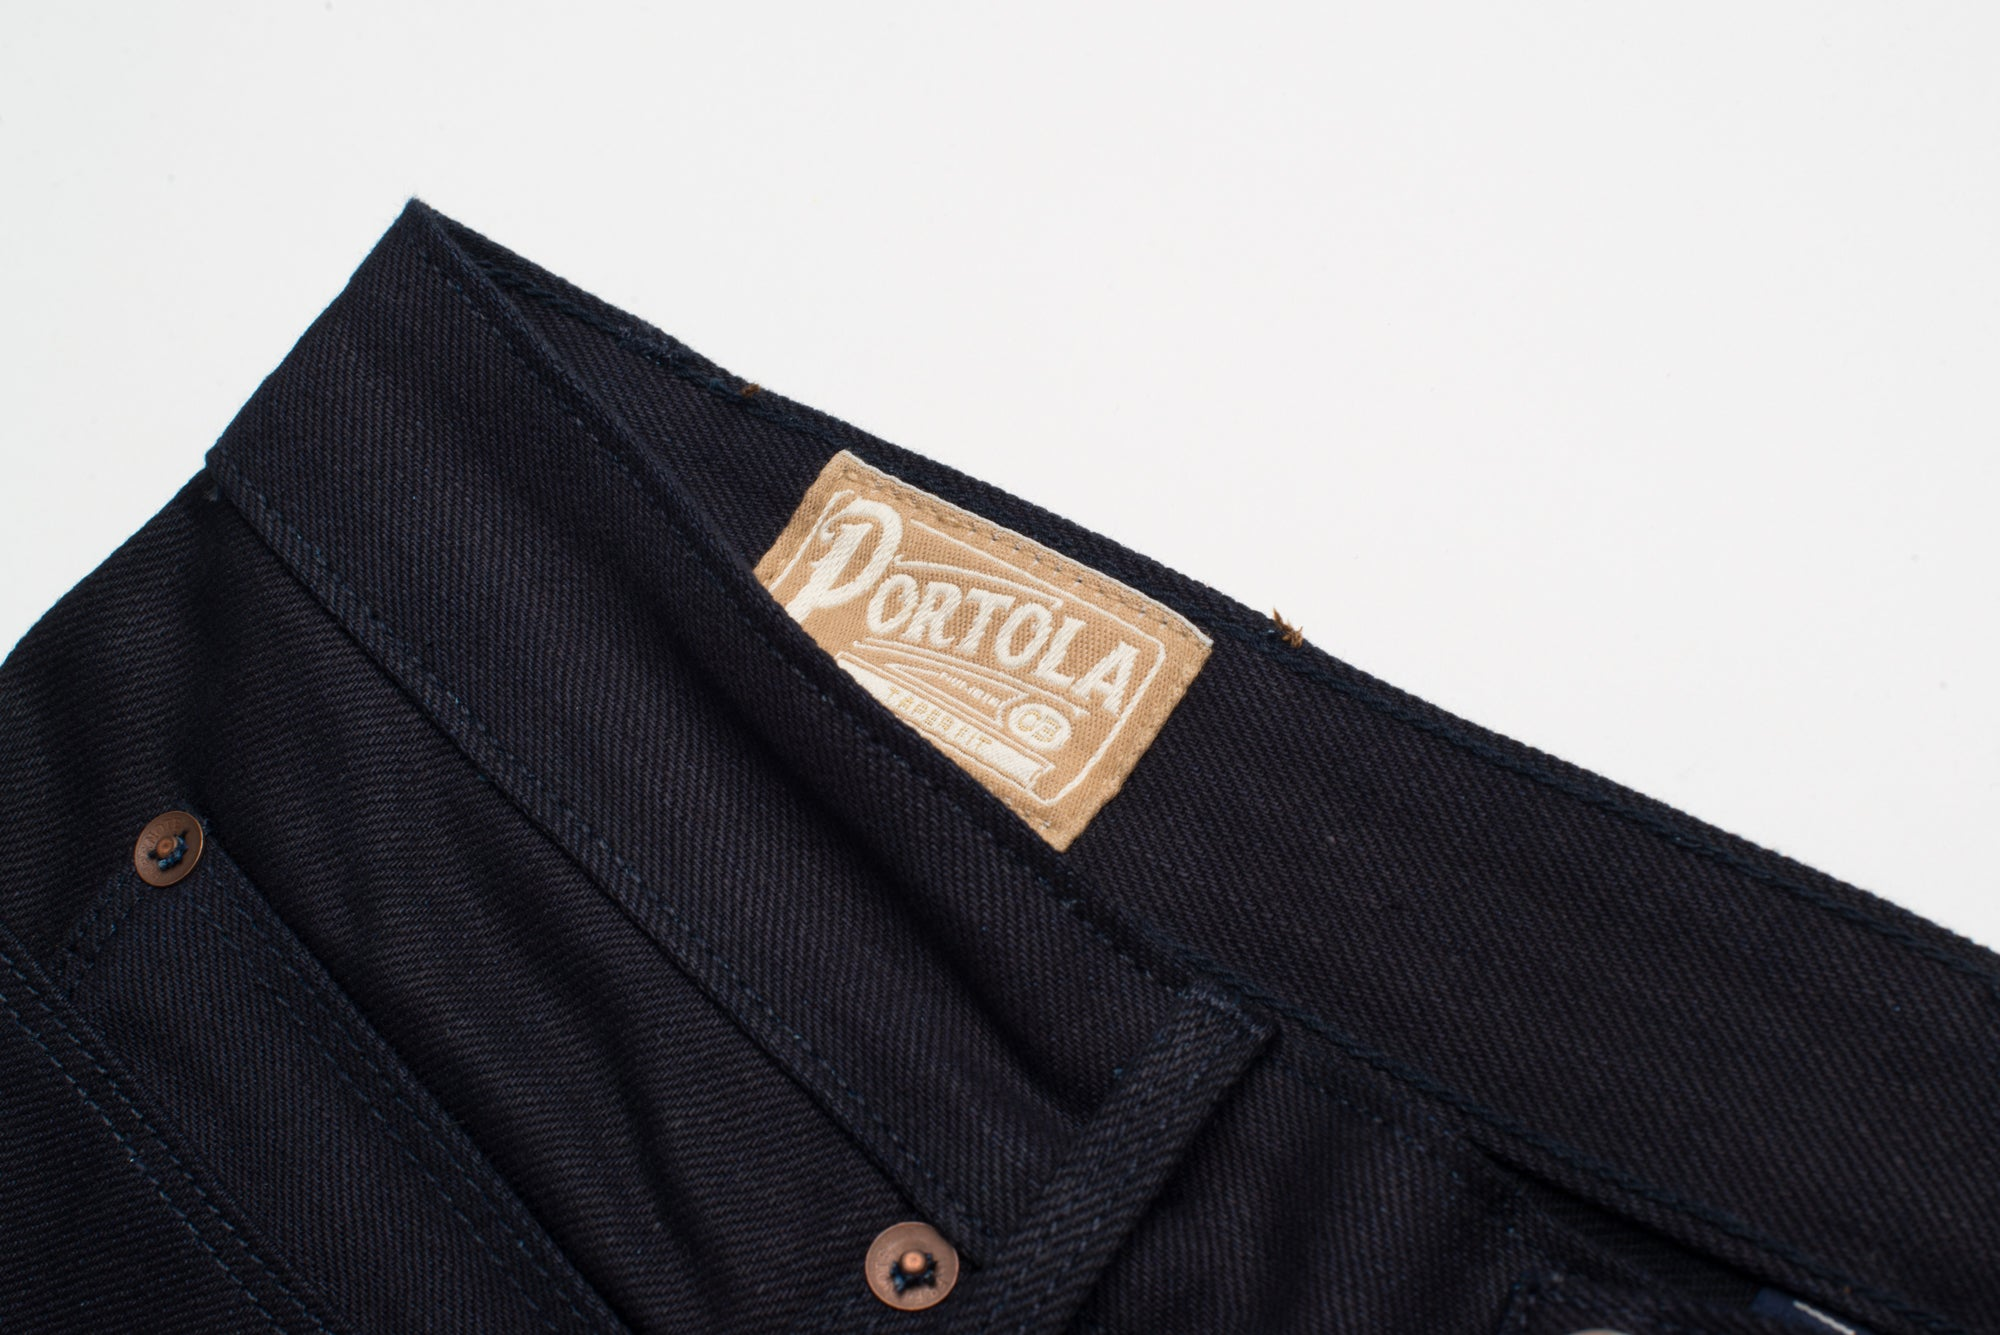 Portola 14.75 oz Blue Black Japanese Denim Portola